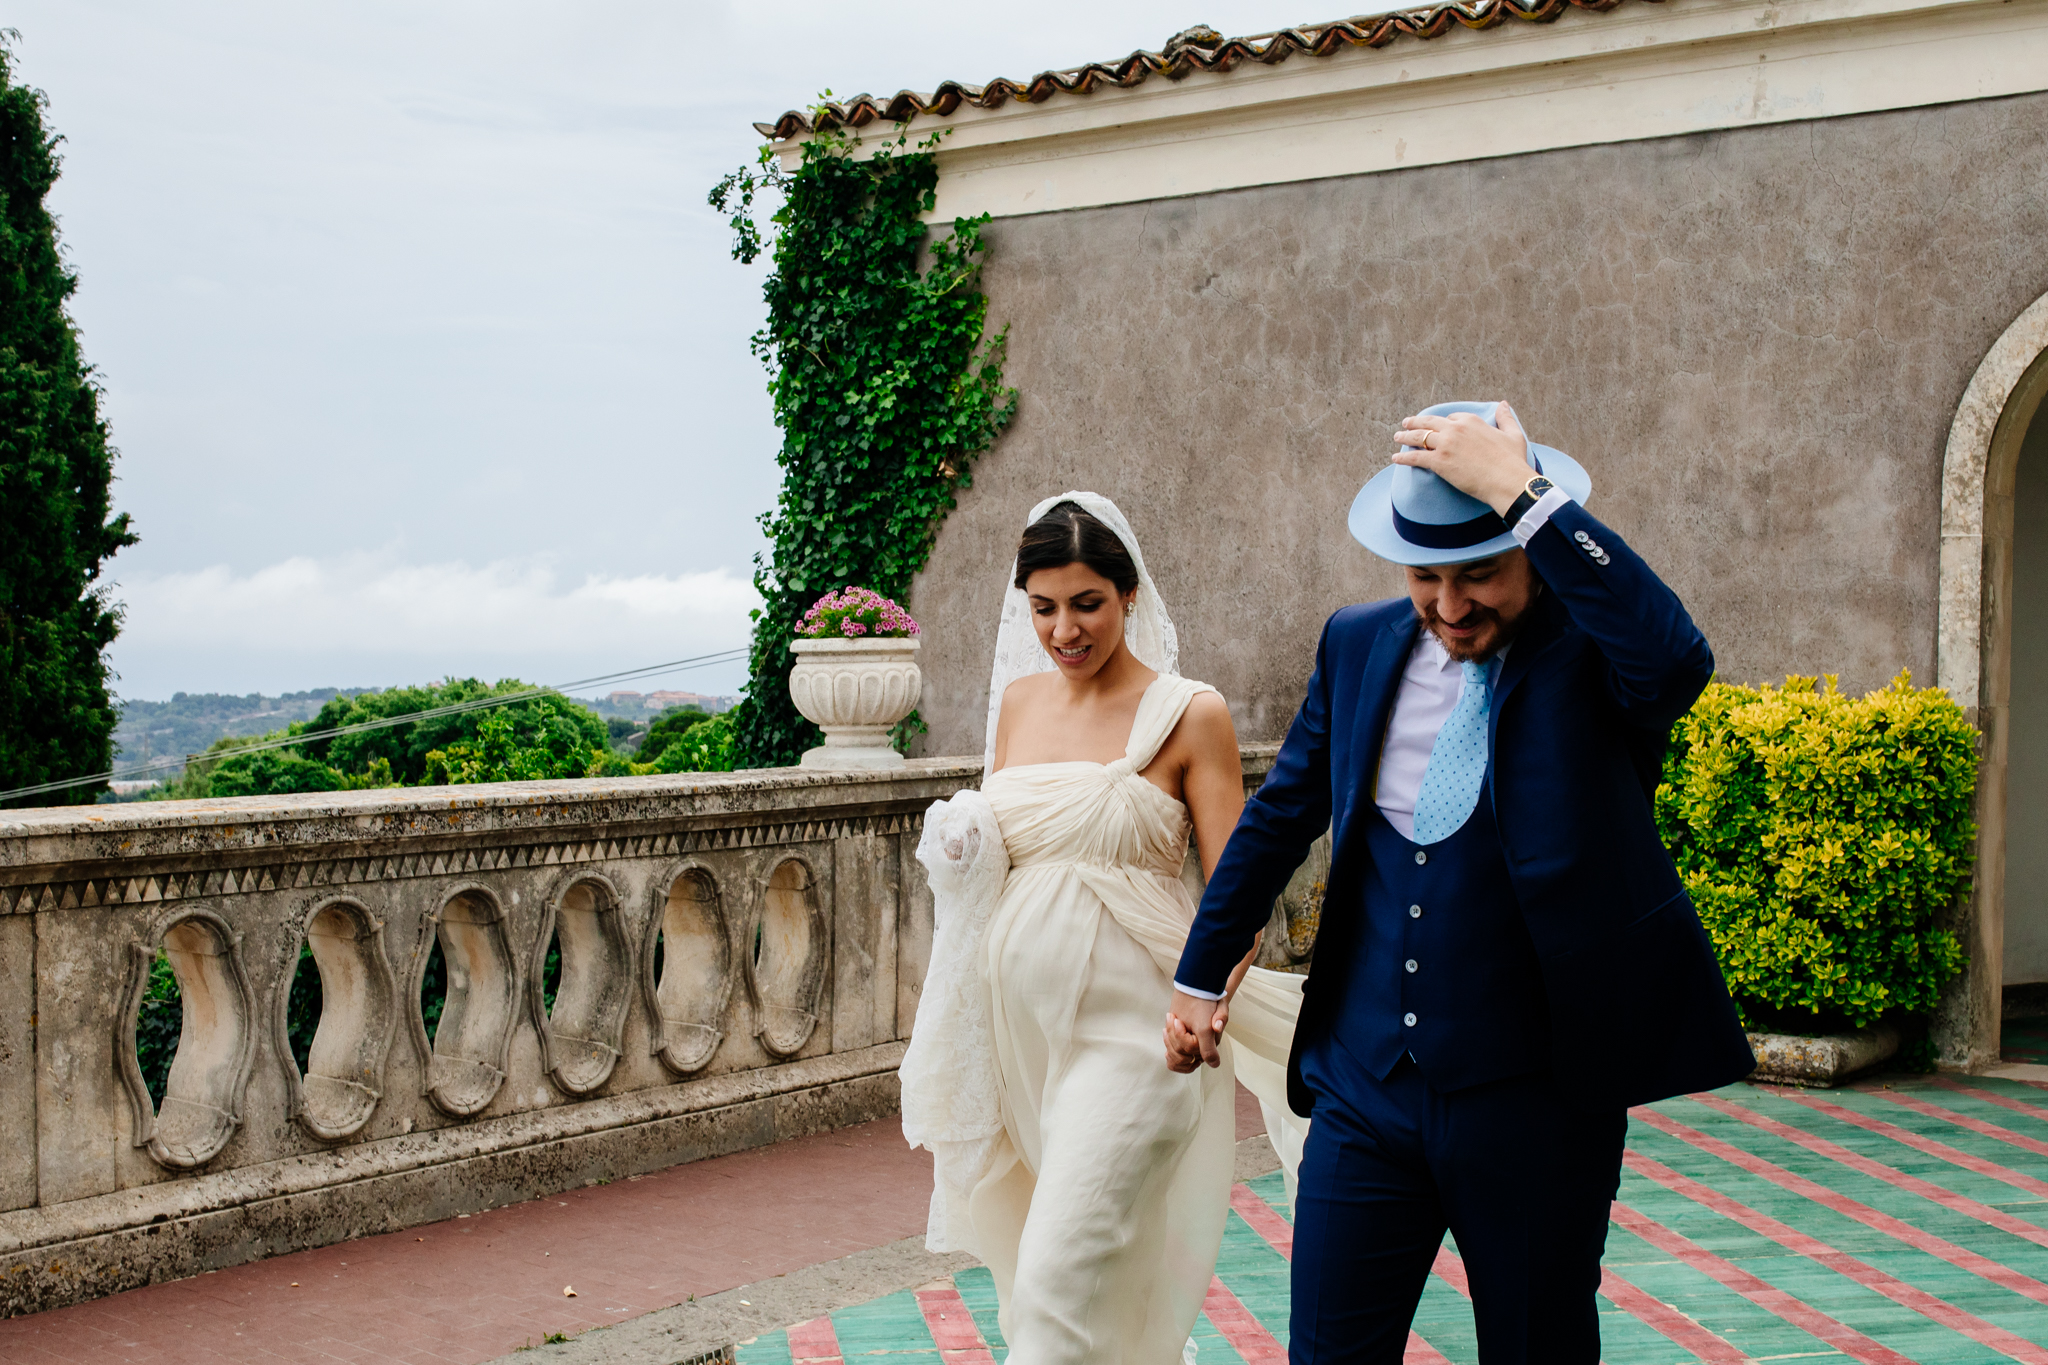 Best-wedding-photographer-in-Sicily- Catania-30.jpg